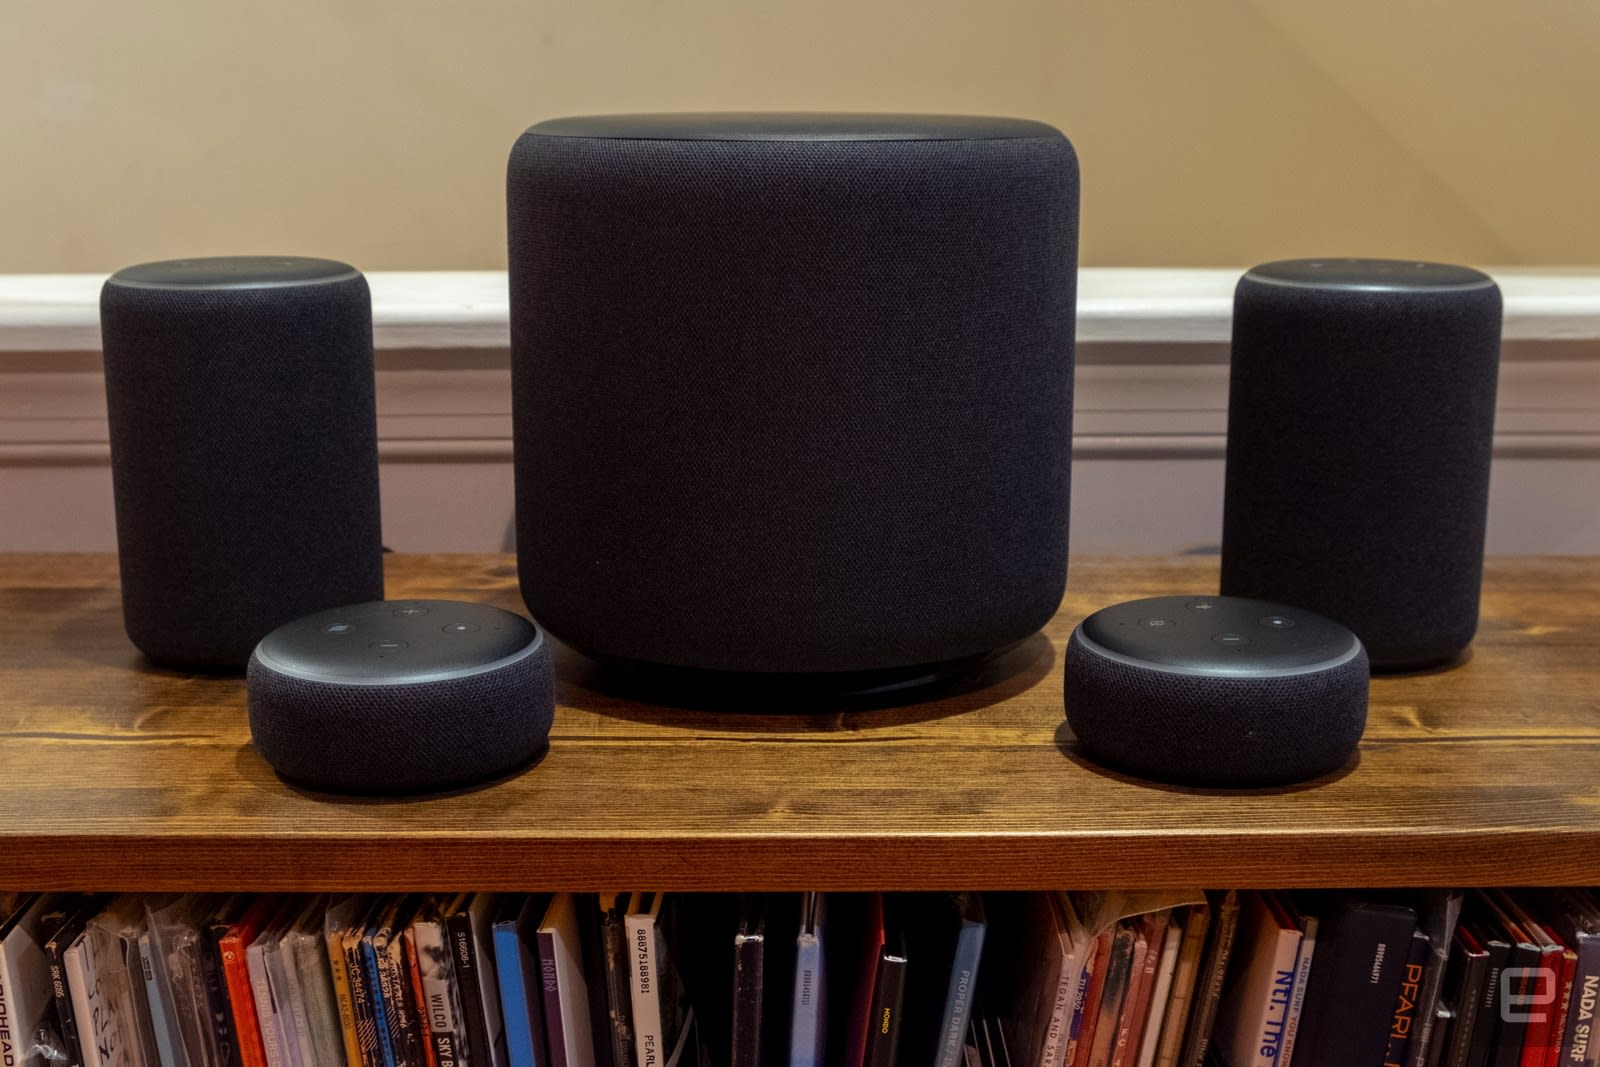 Apple Music will work on Echo speakers starting December 17th